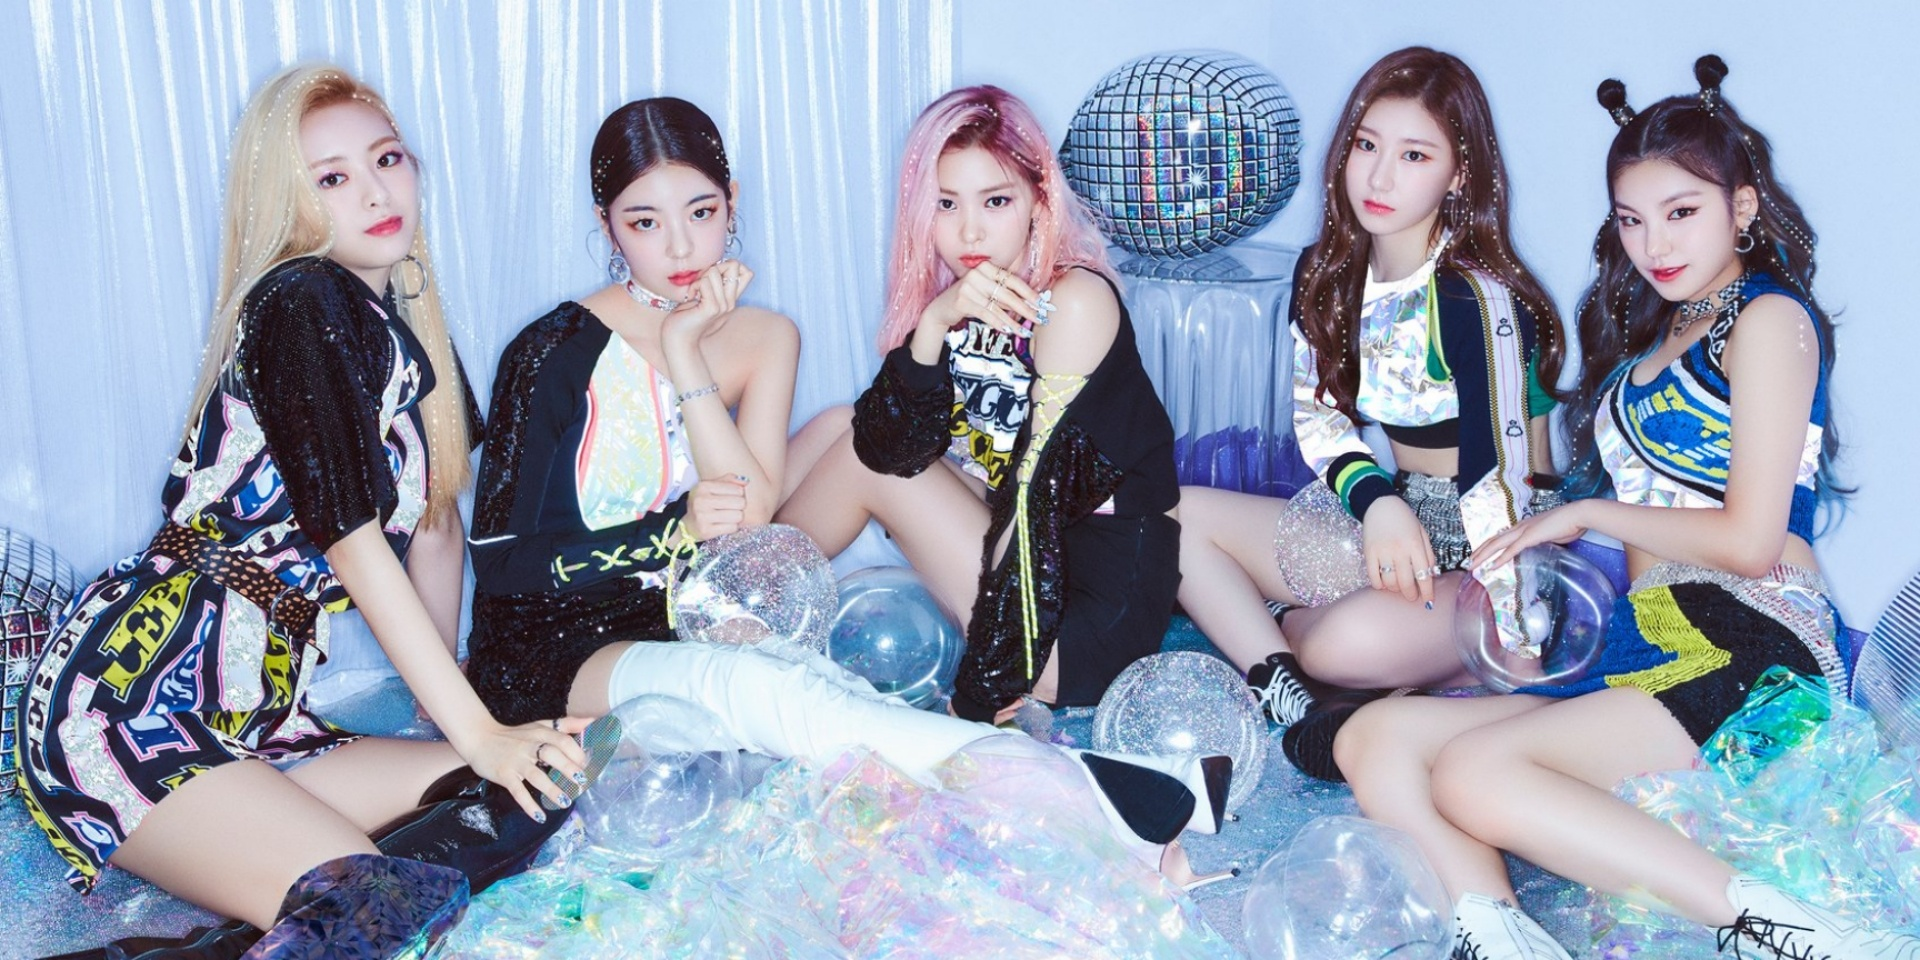 K-Pop girl group ITZY to make debut showcase performances in Asia later this year, stops in Jakarta, Macau, Taipei, Manila, Singapore, and Bangkok announced